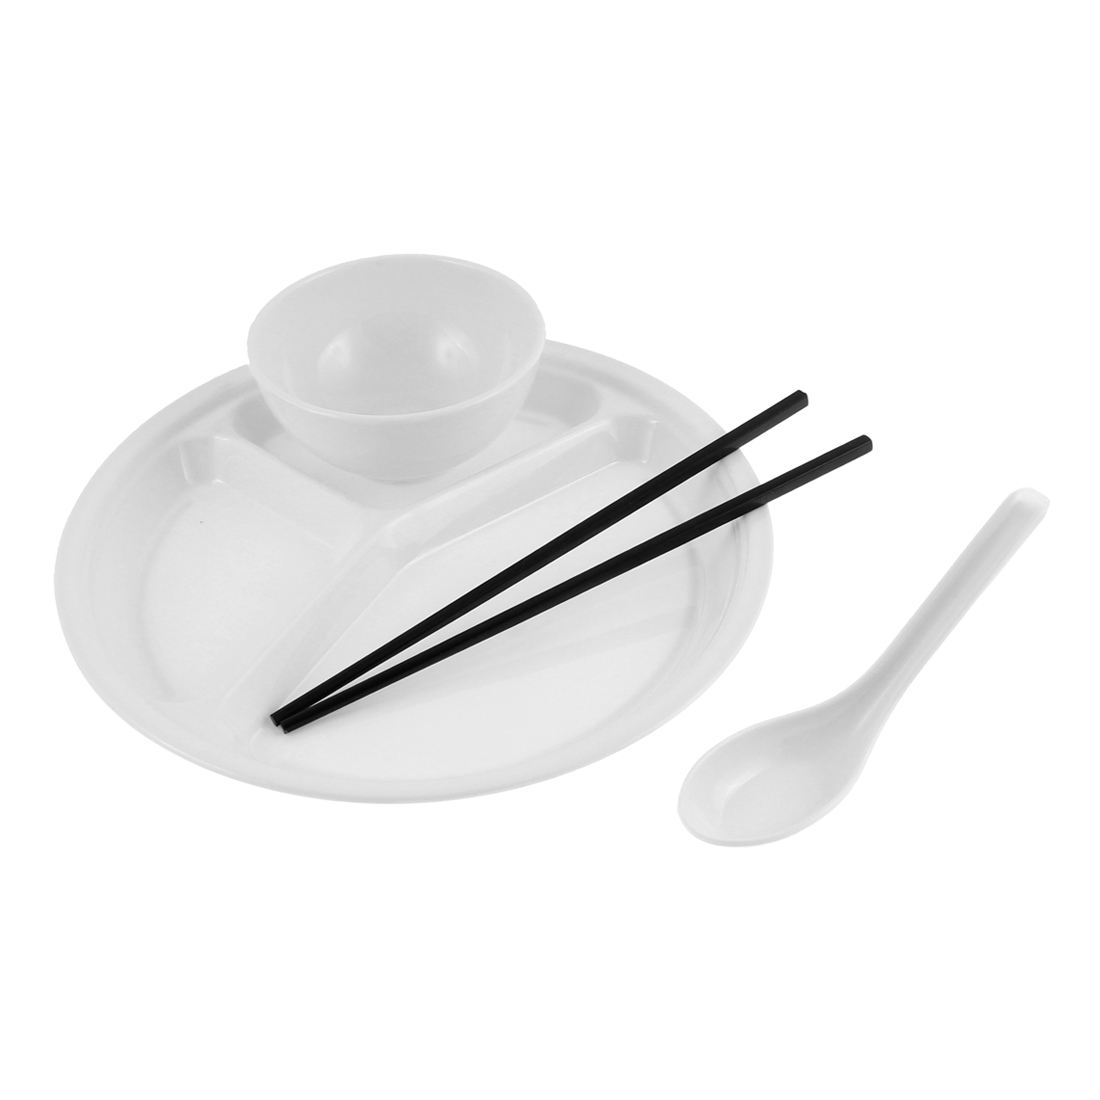 School Canteen Plastic Bowl Chopsticks Spoon 3 Compartment Divided Plate White 4 in 1